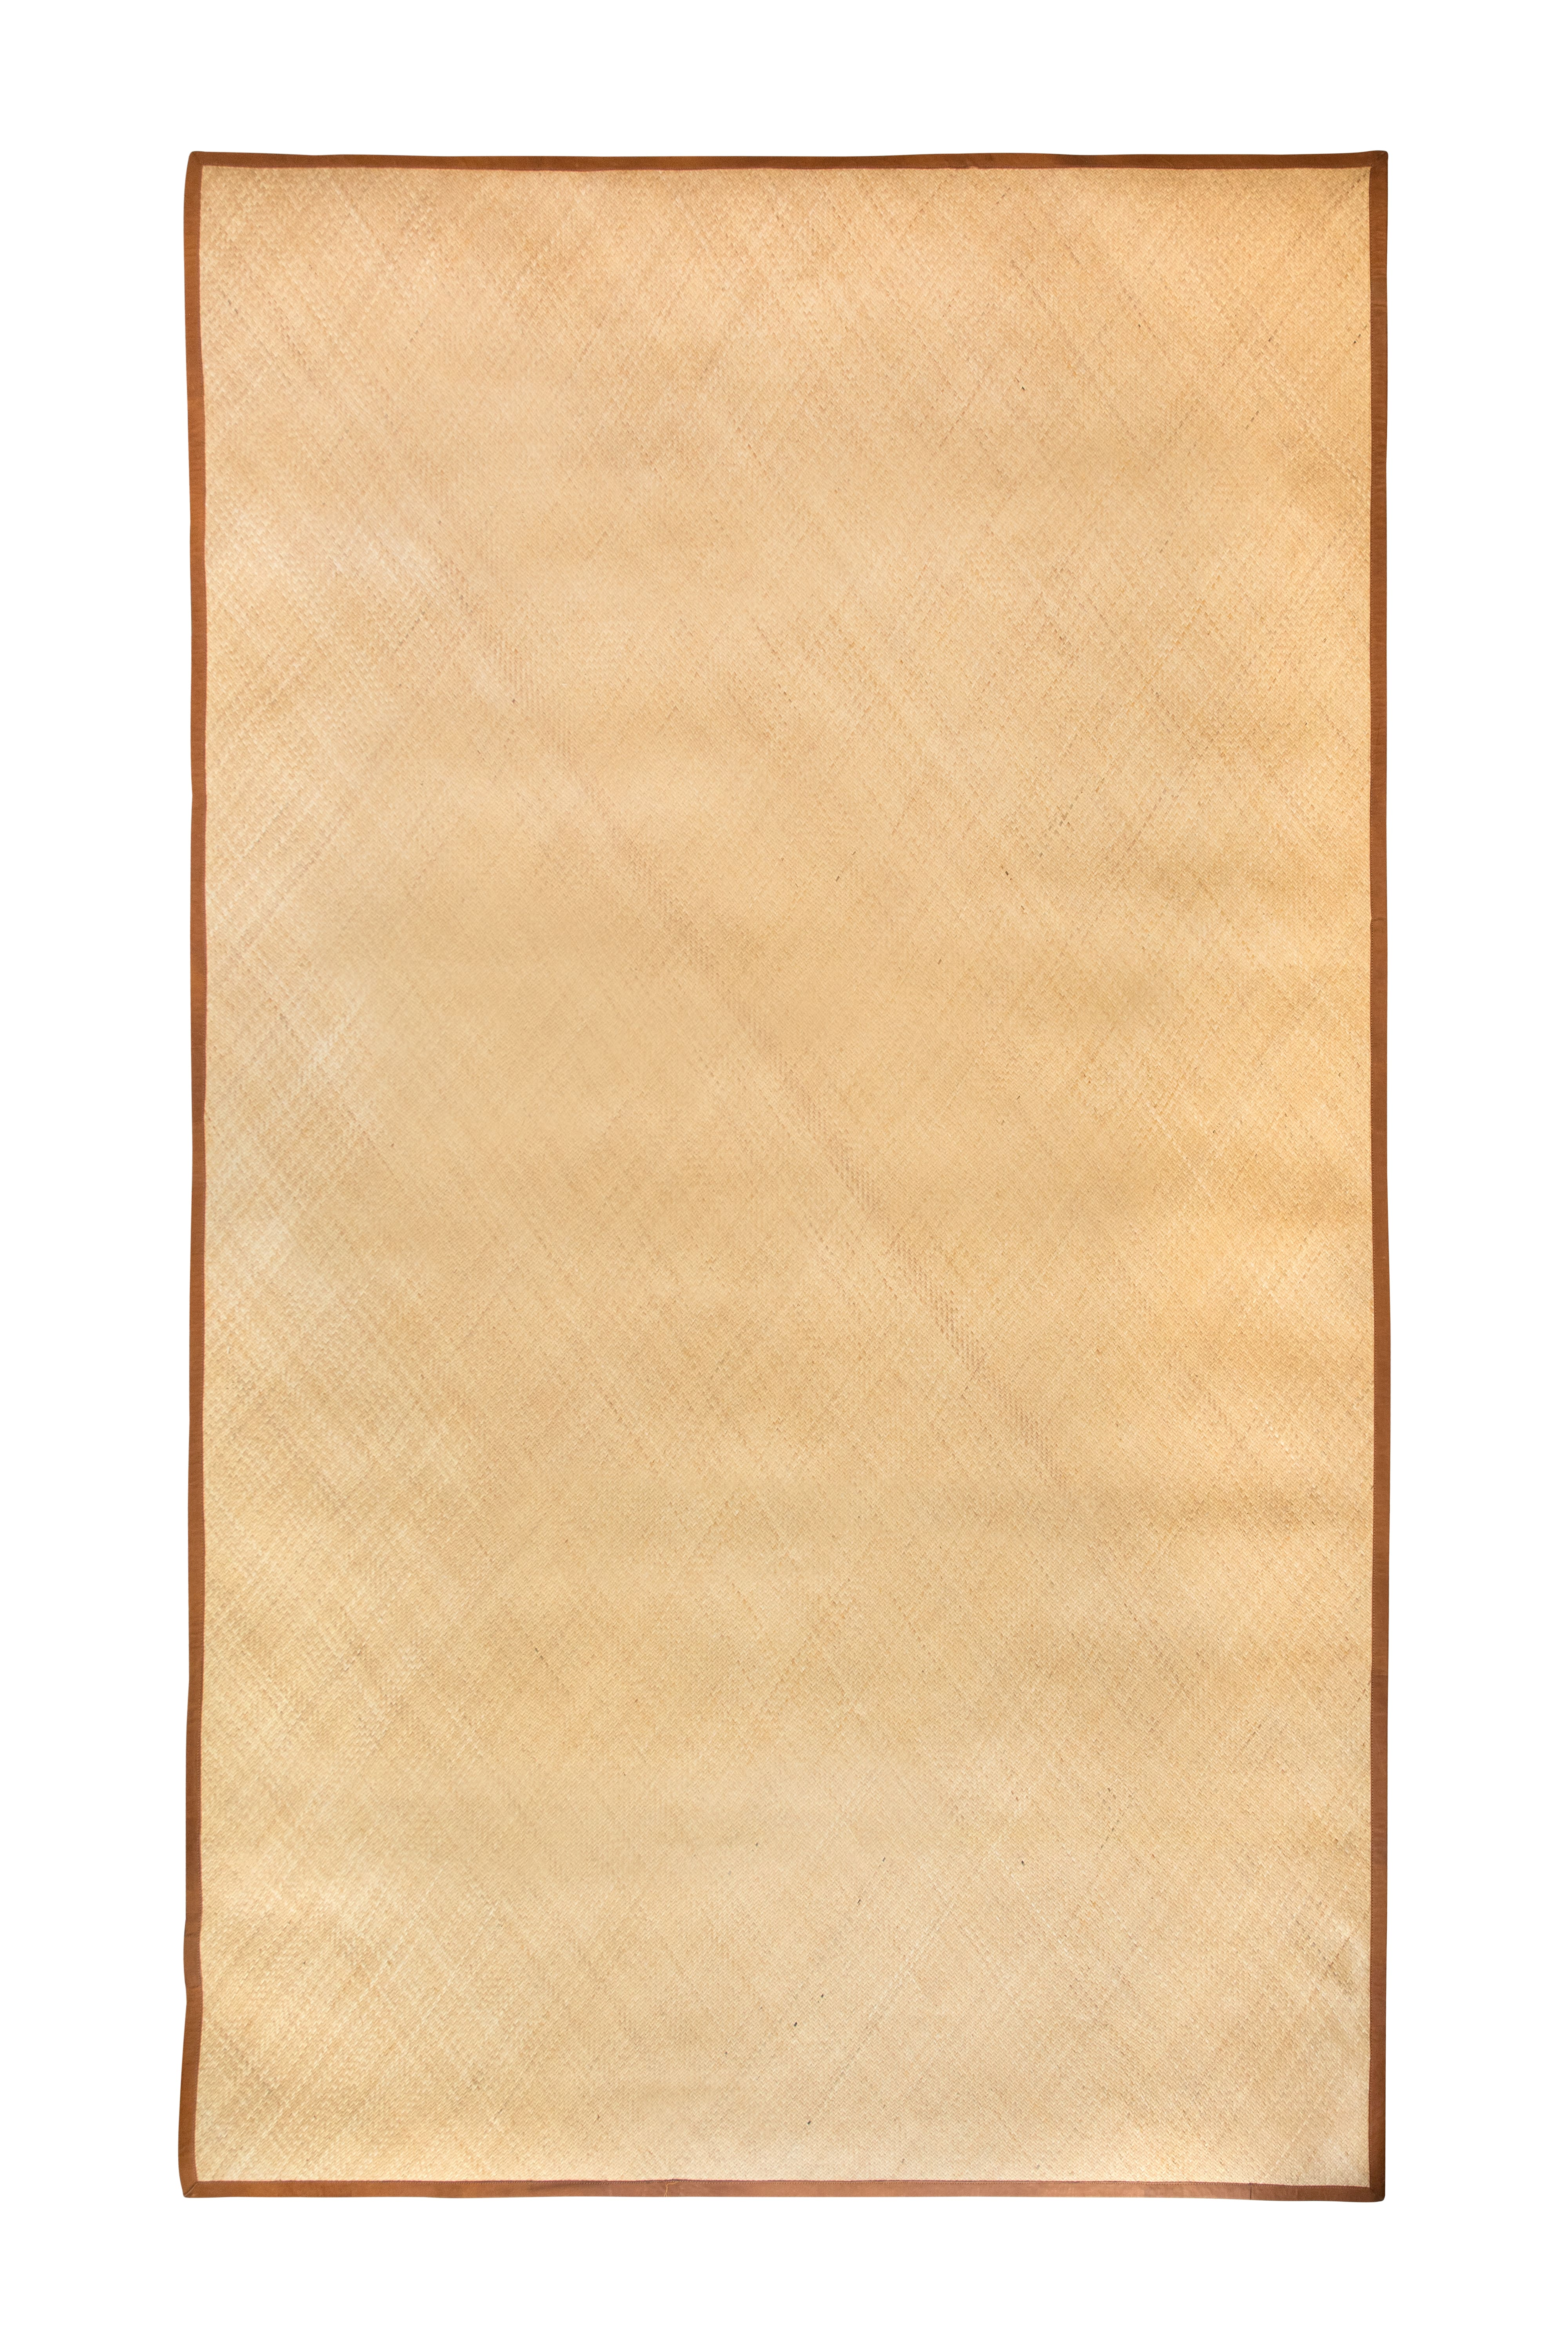 Natural fibre and leather mat